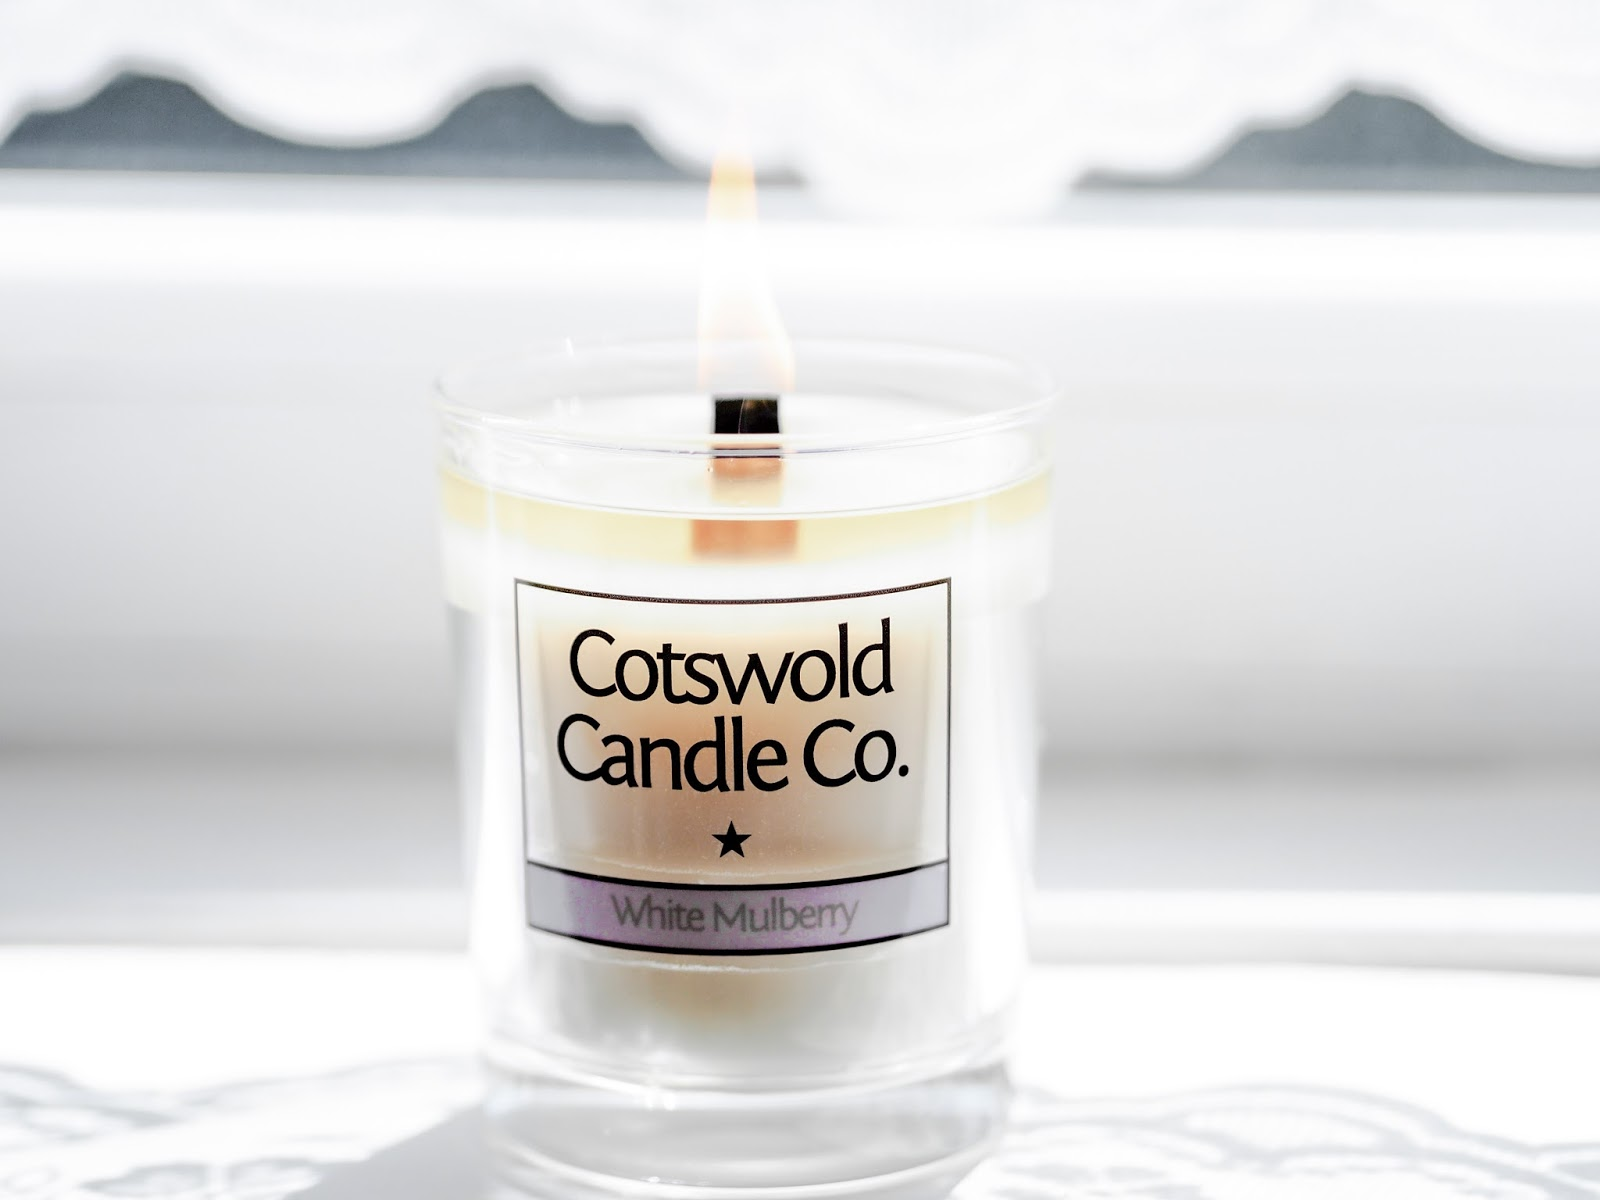 Cotswold Candle Company White Mulberry Review